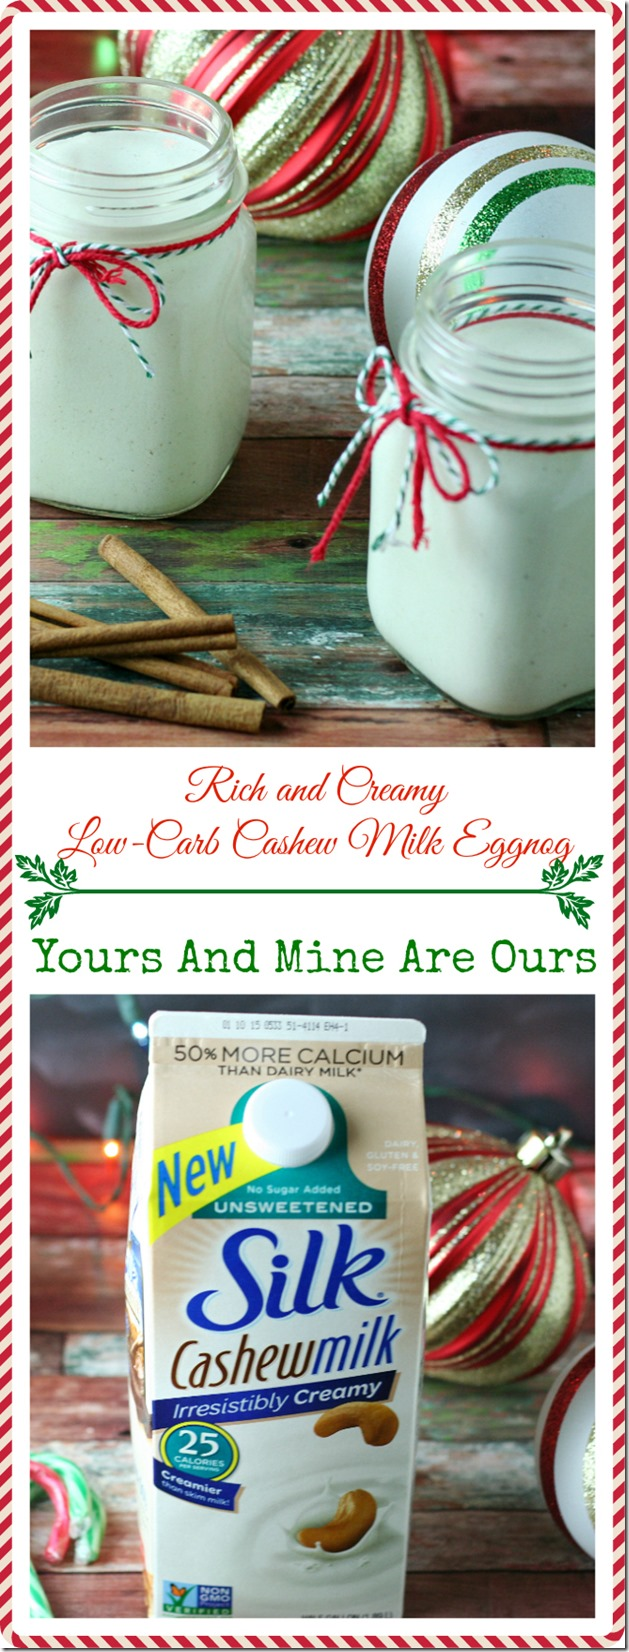 Rich and Creamy Low-Carb Cashew Milk Eggnog Yours And Mine Are Ours